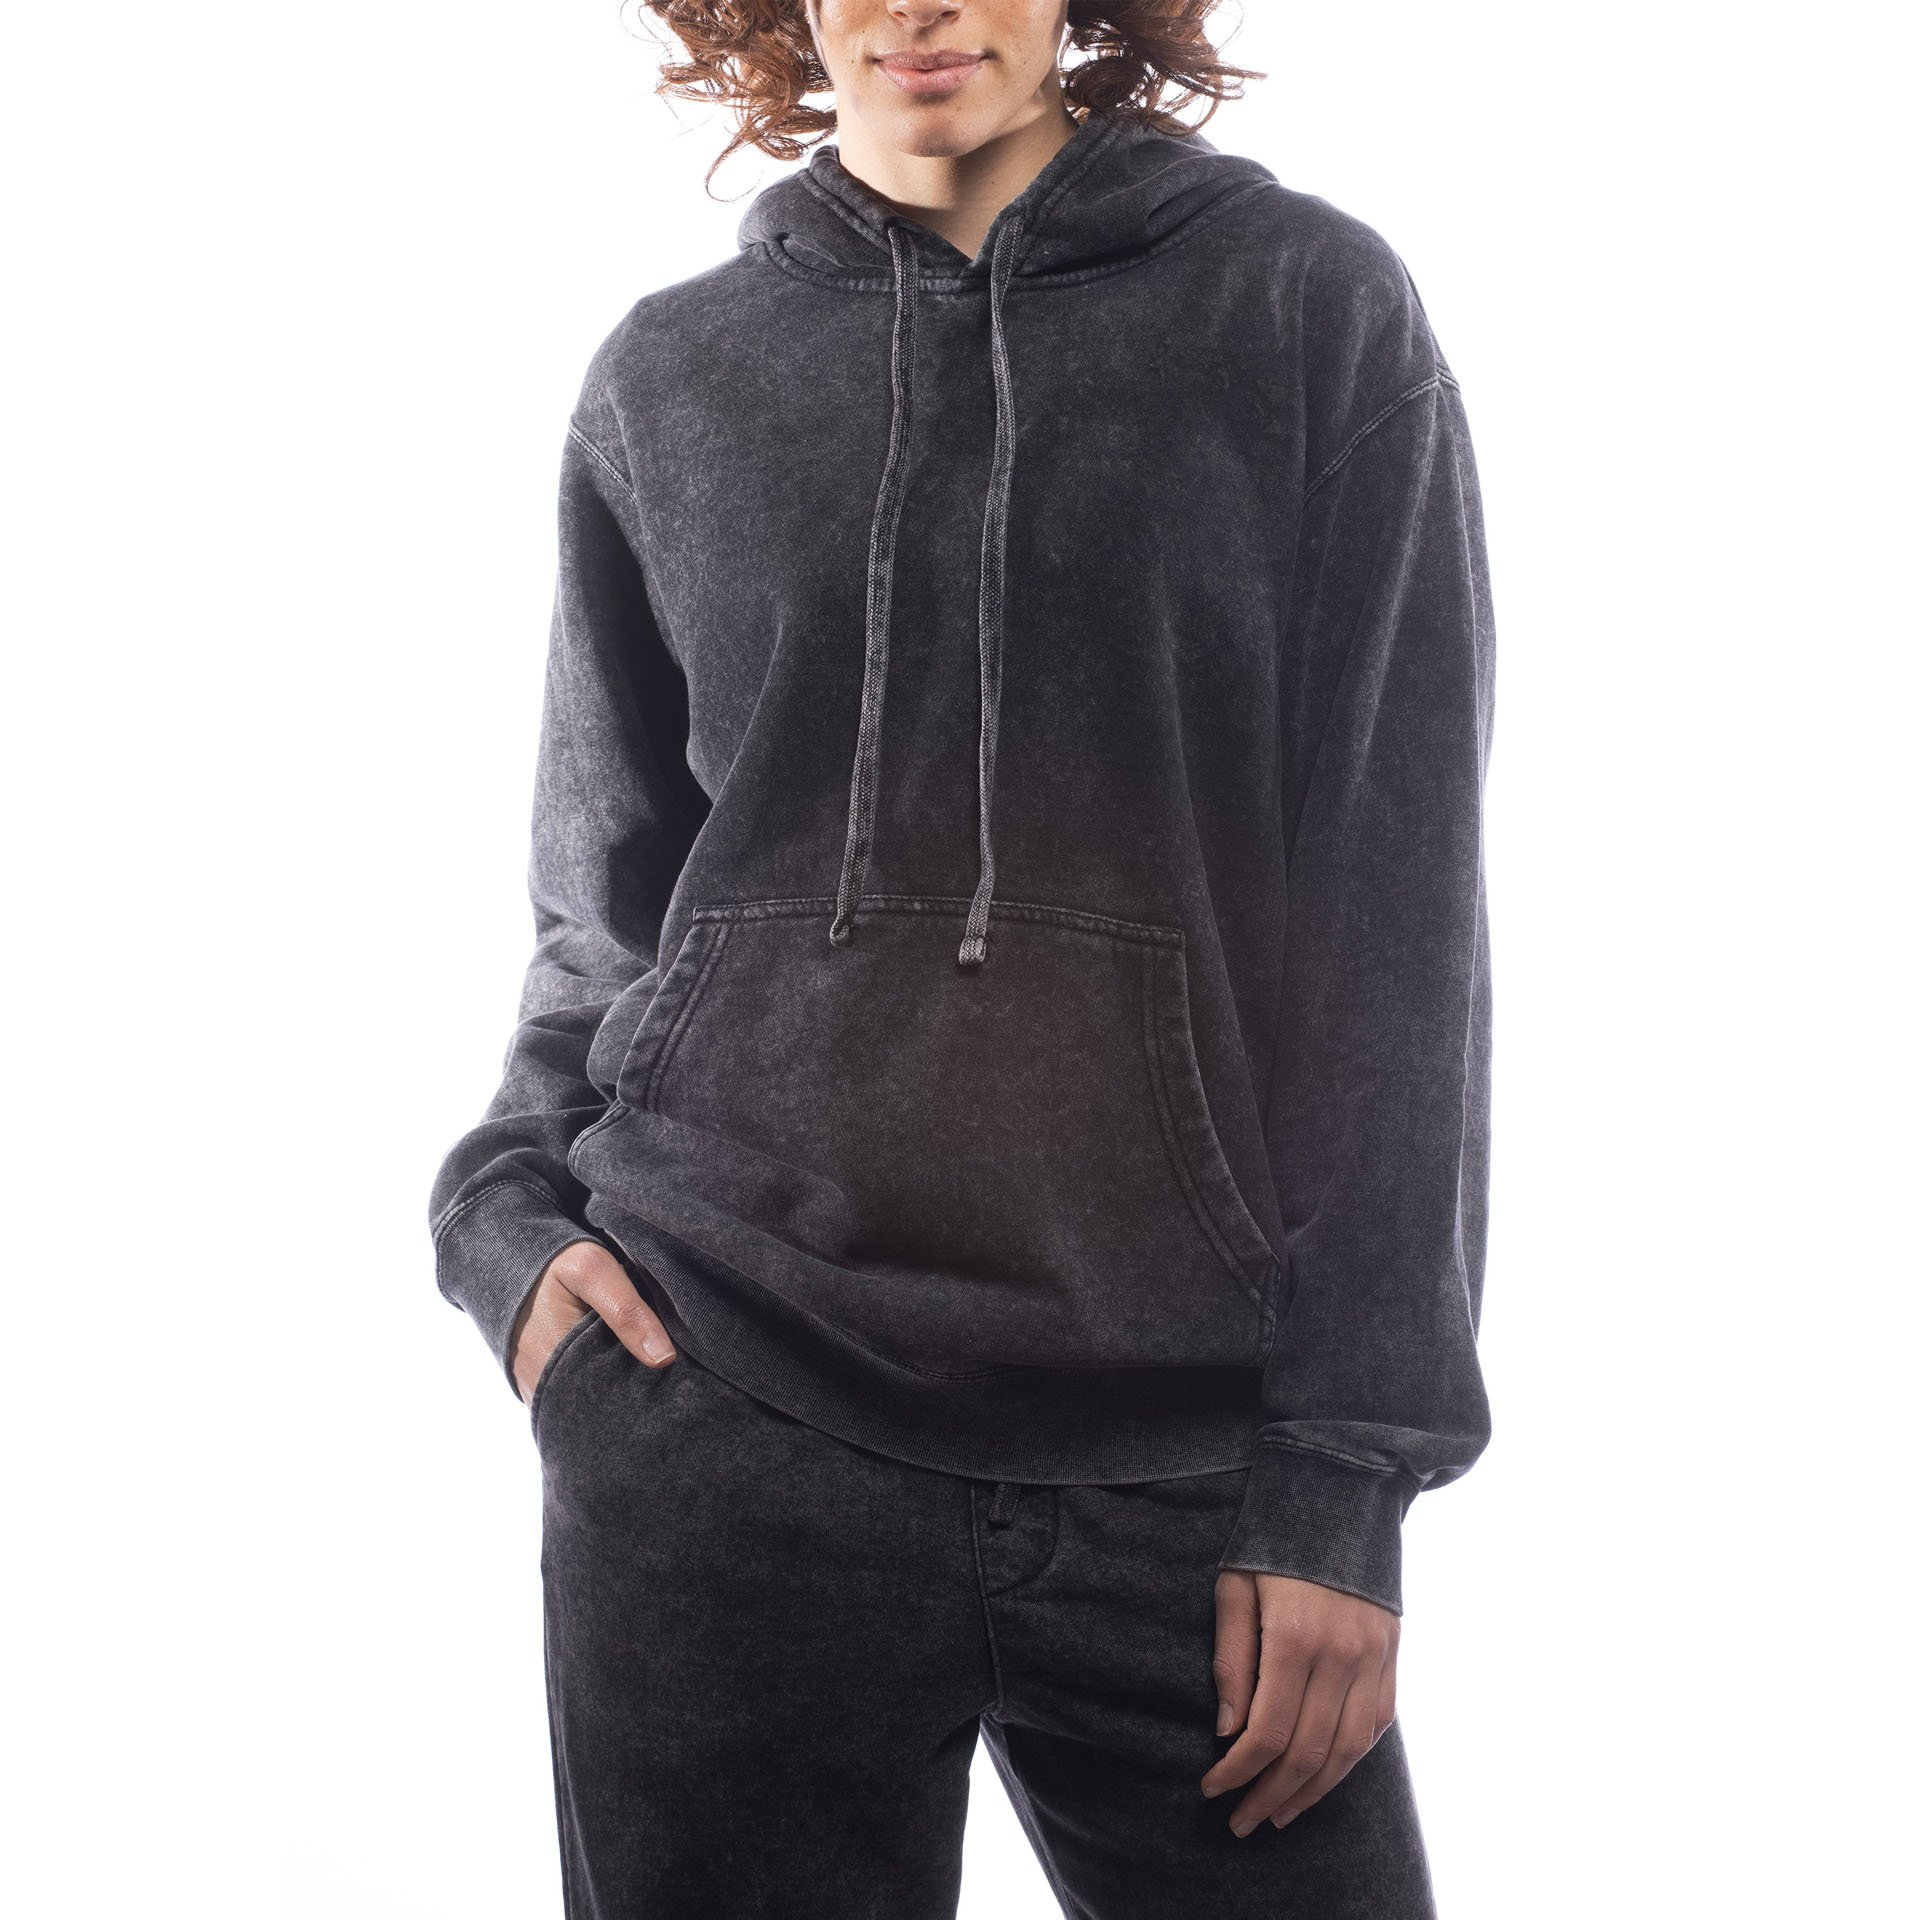 Unisex Upcycled Hoodie - Made For The People - Mineral Wash